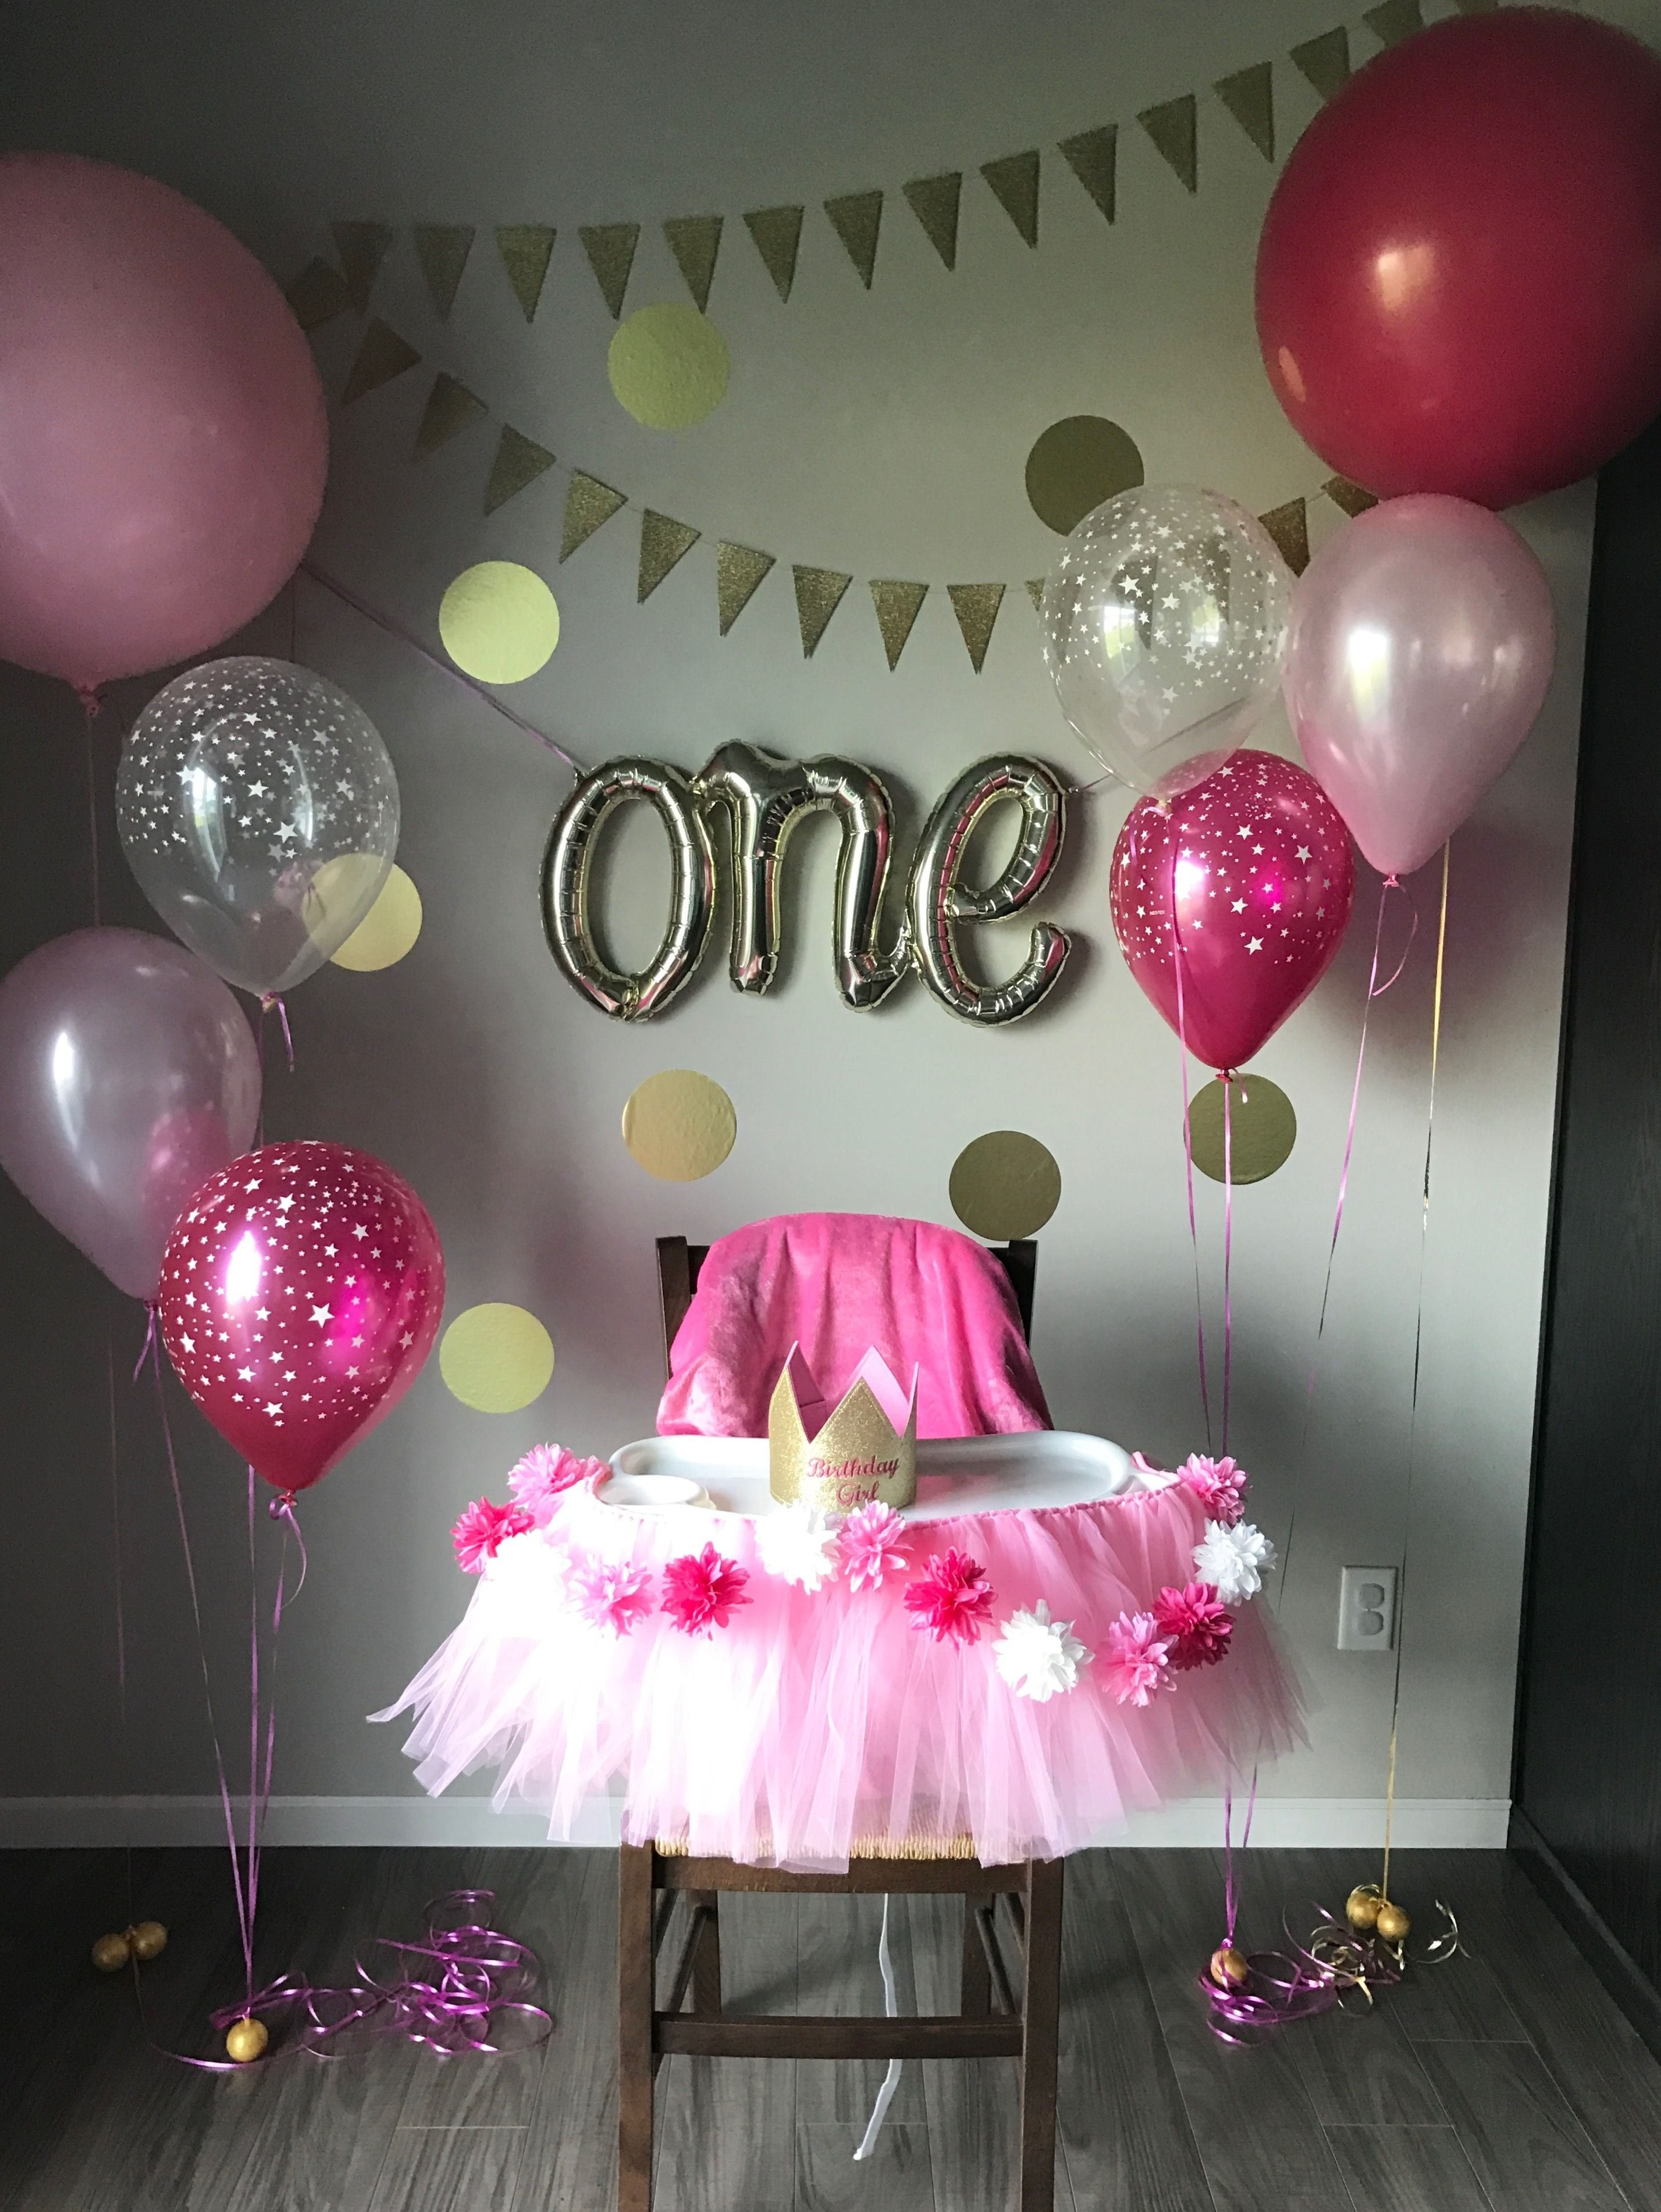 10 Lovely Baby Girl 1St Birthday Party Ideas first birthday party pinteres 2 2021